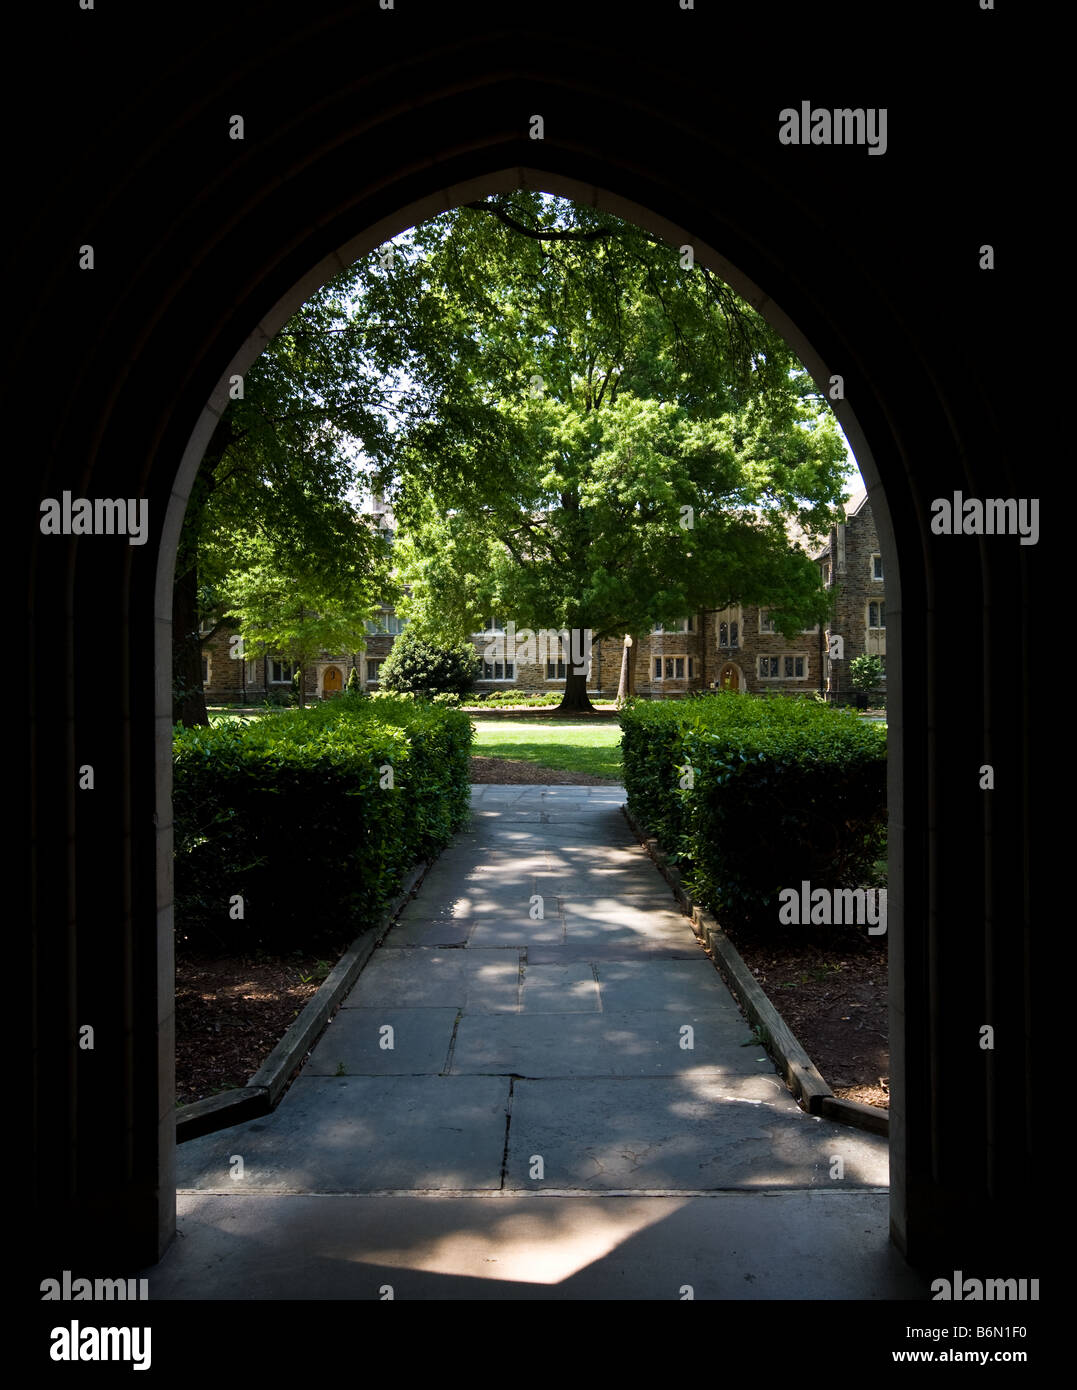 An archway between the dormitories on the Duke University campus. Stock Photo